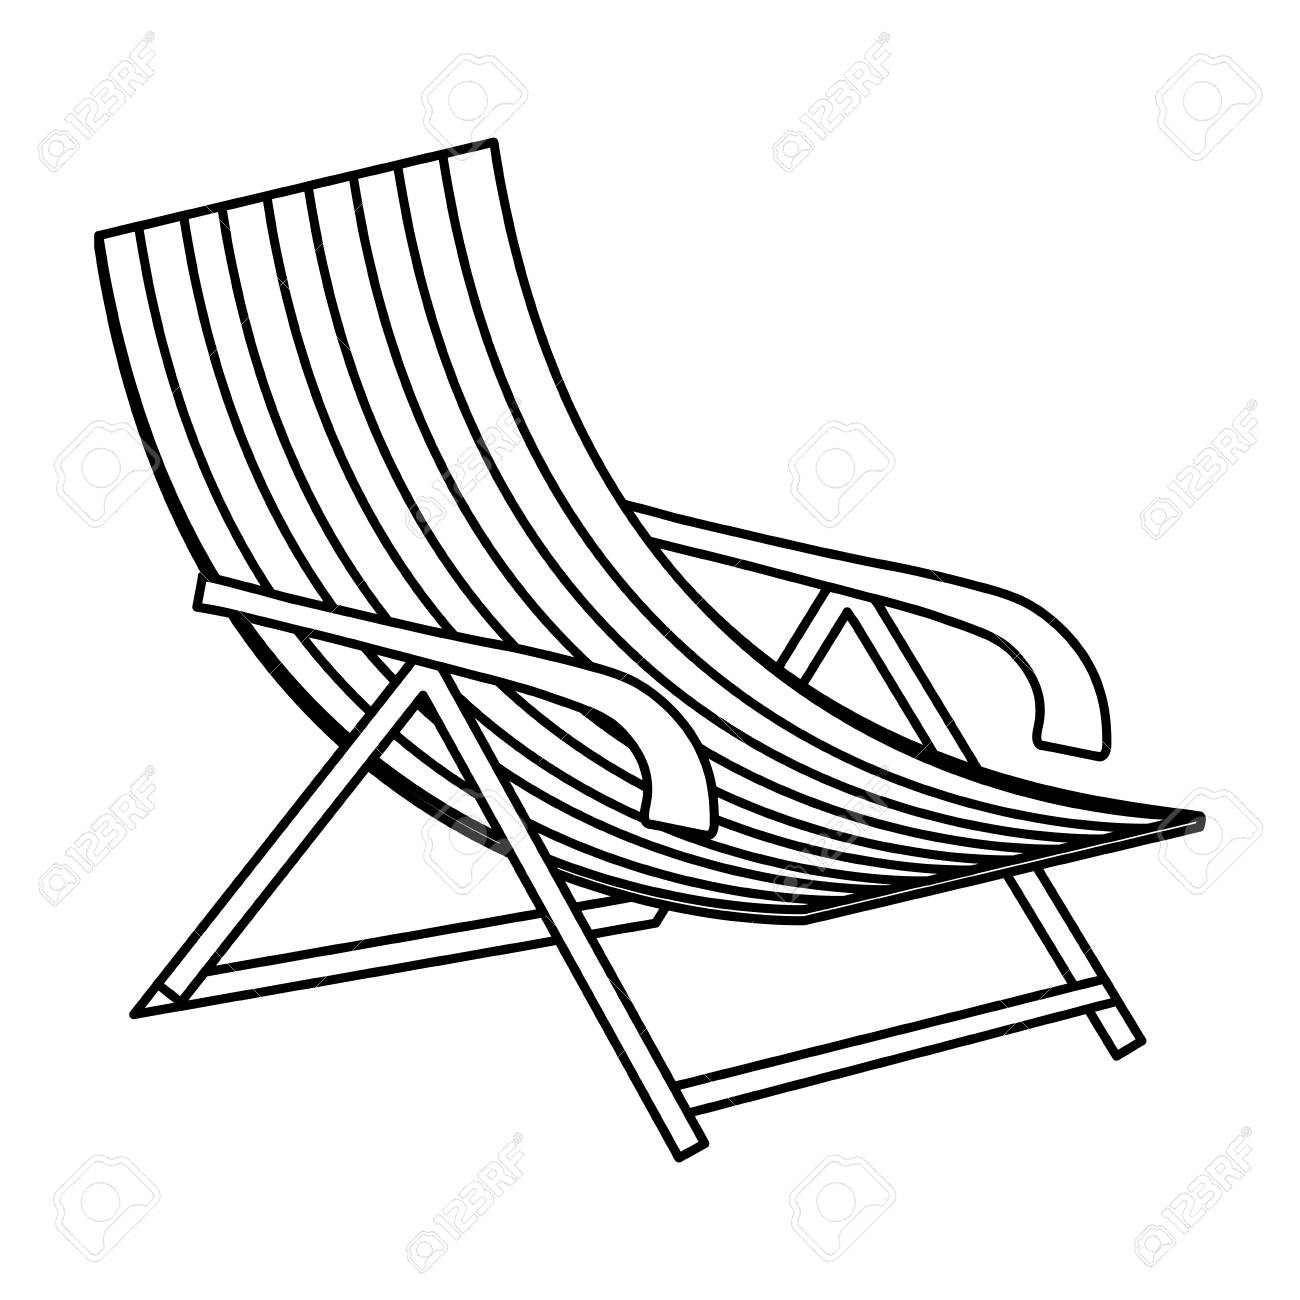 beach chair icon over white background, vector illustration.